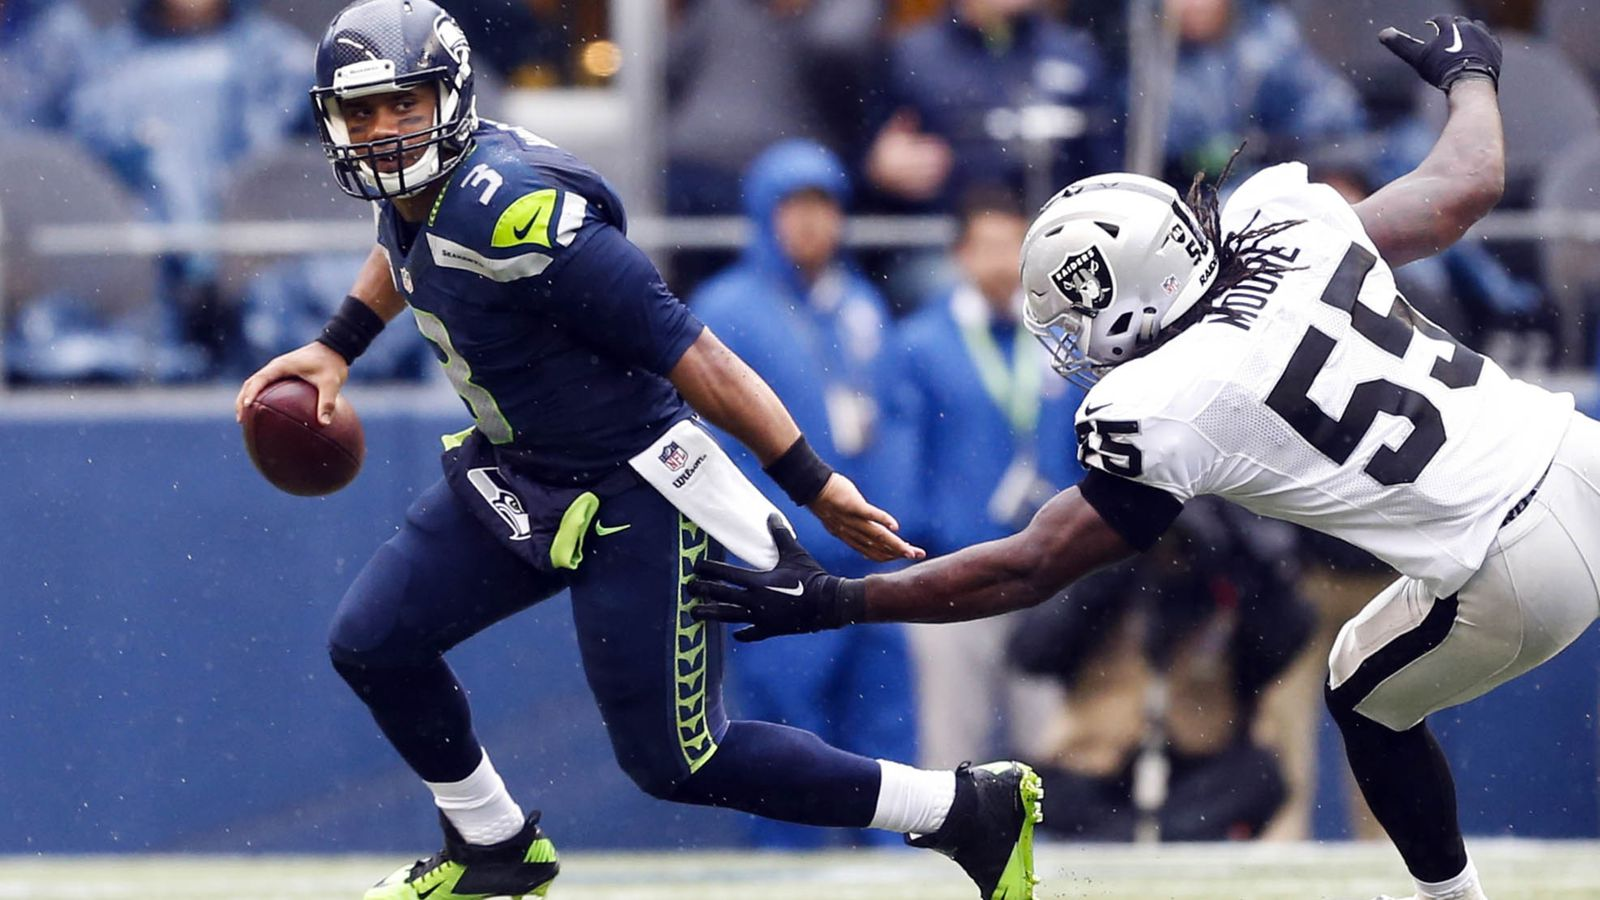 Seahawks vs. Raiders final score: Seahawks hang on to beat the Raiders